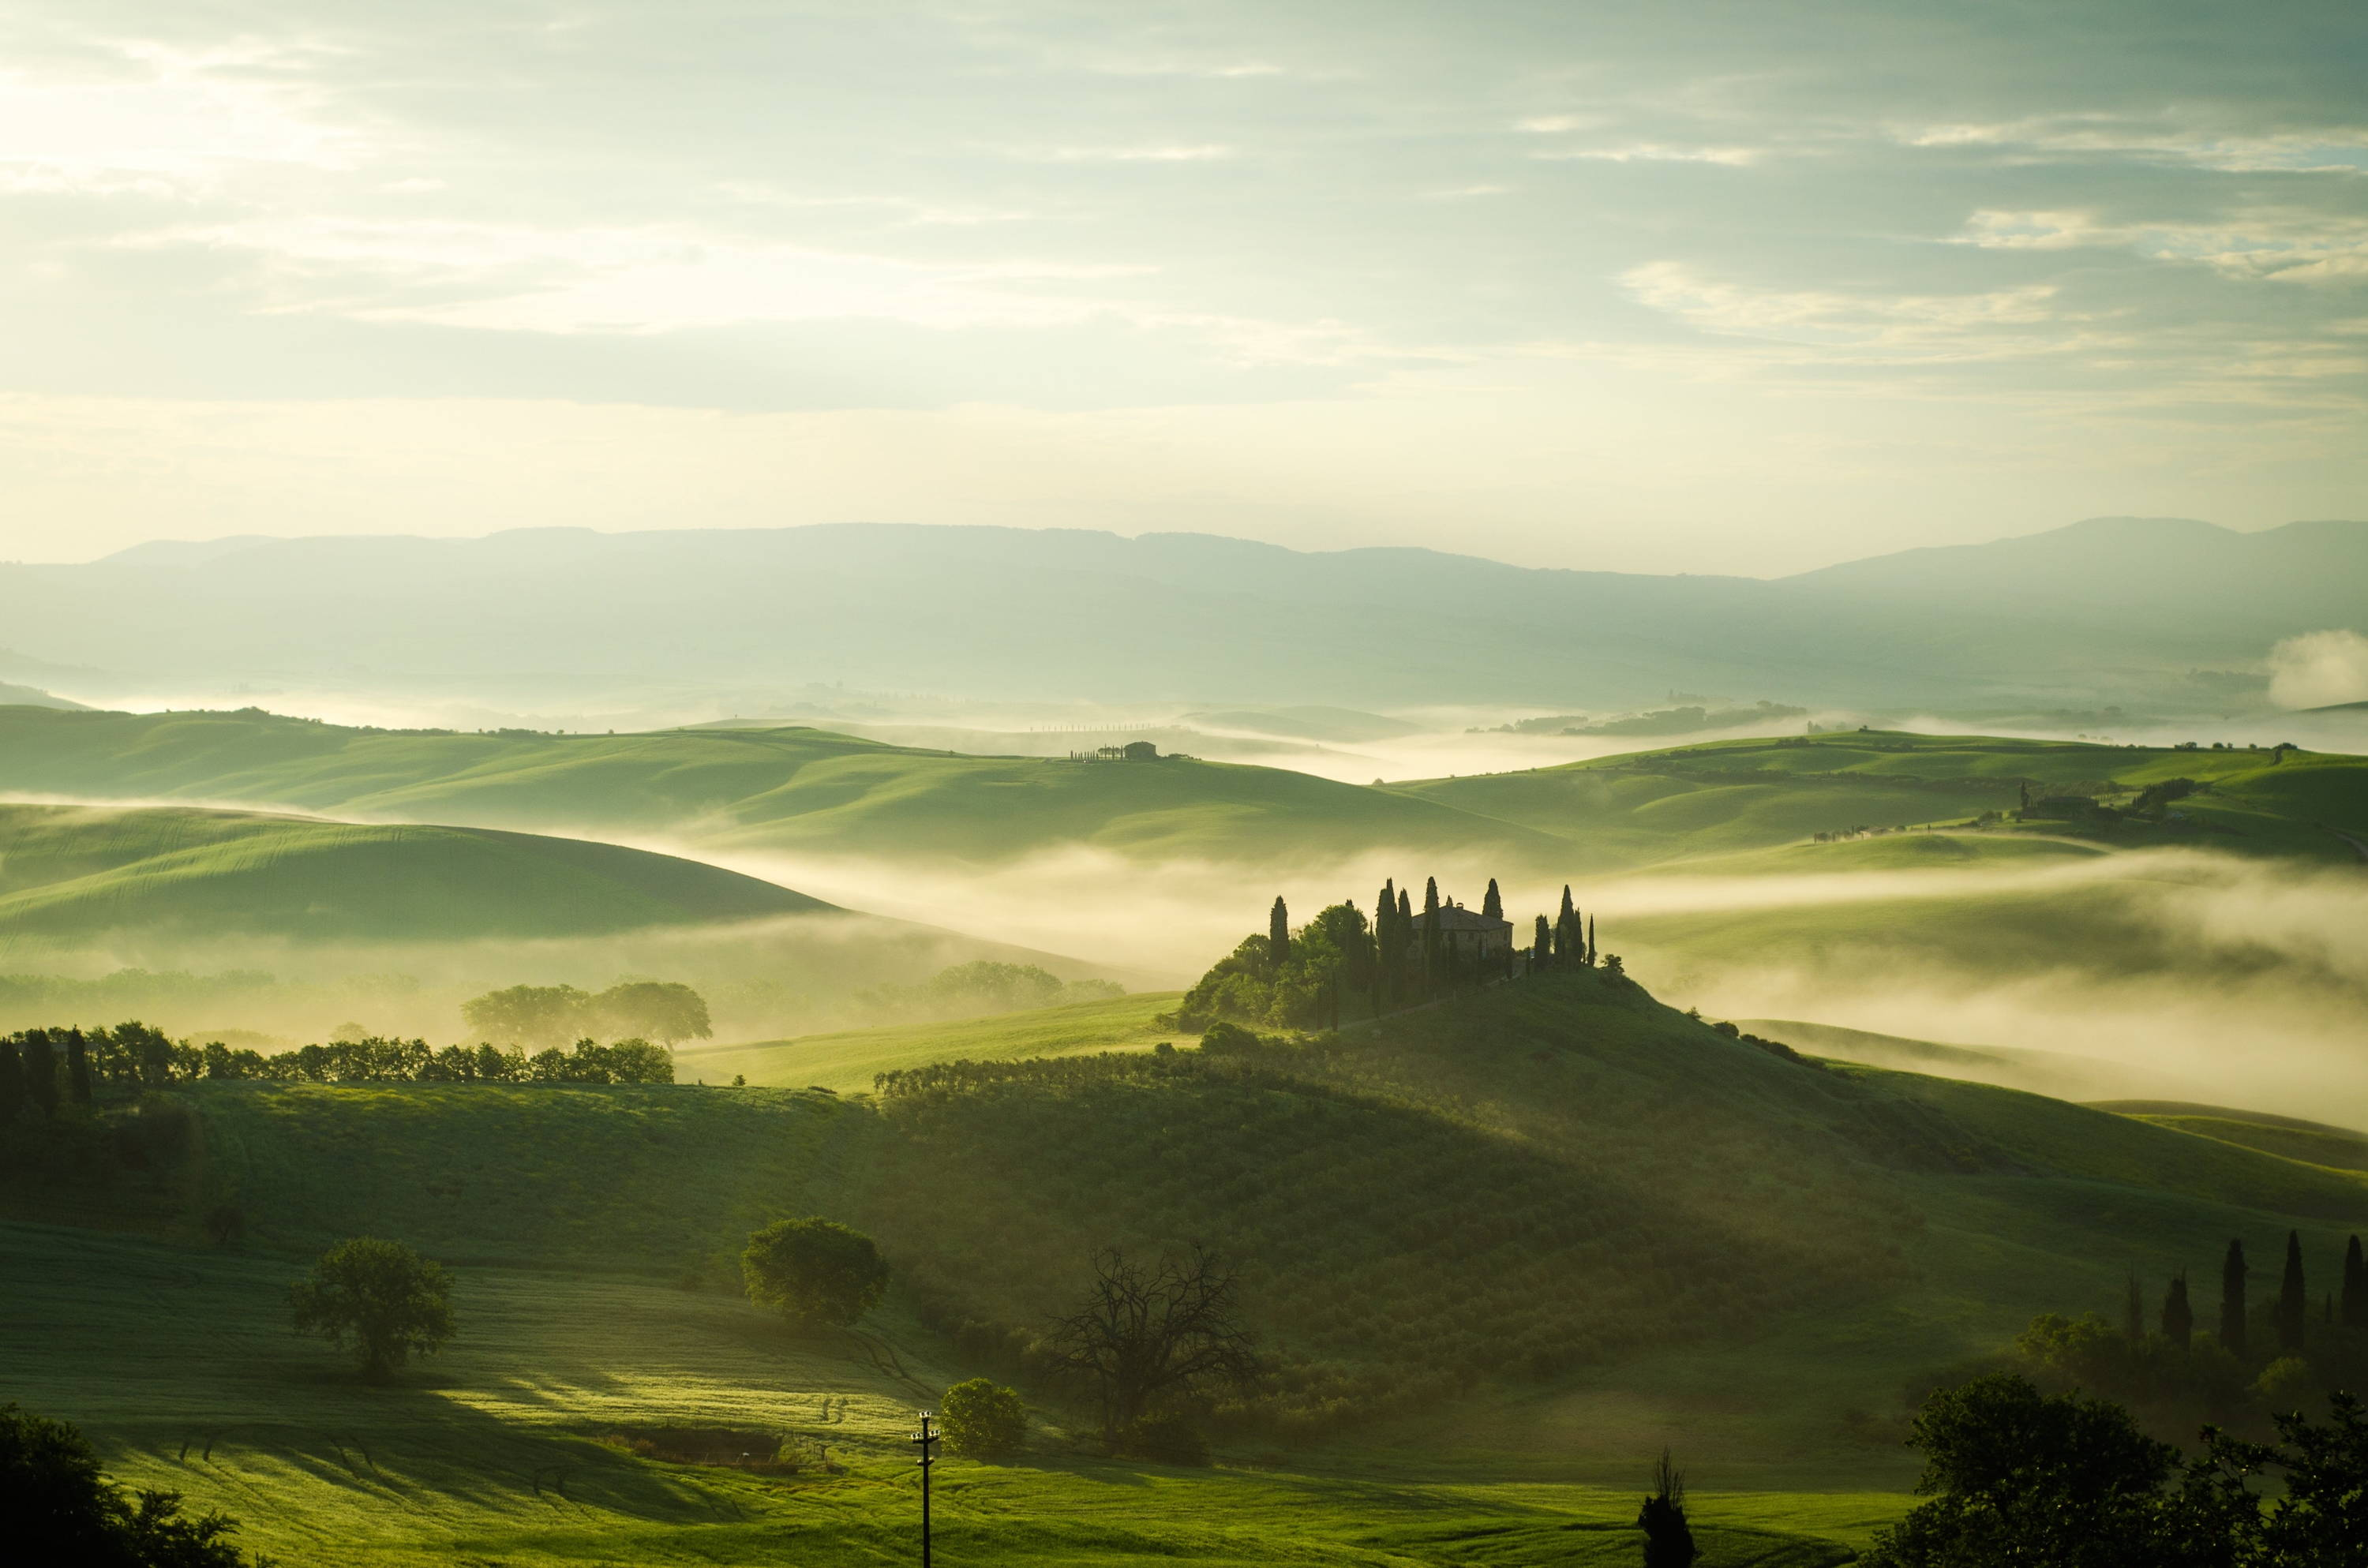 Perfect October fog conditions for growing Nebbiolo in a Northern Italy valley.